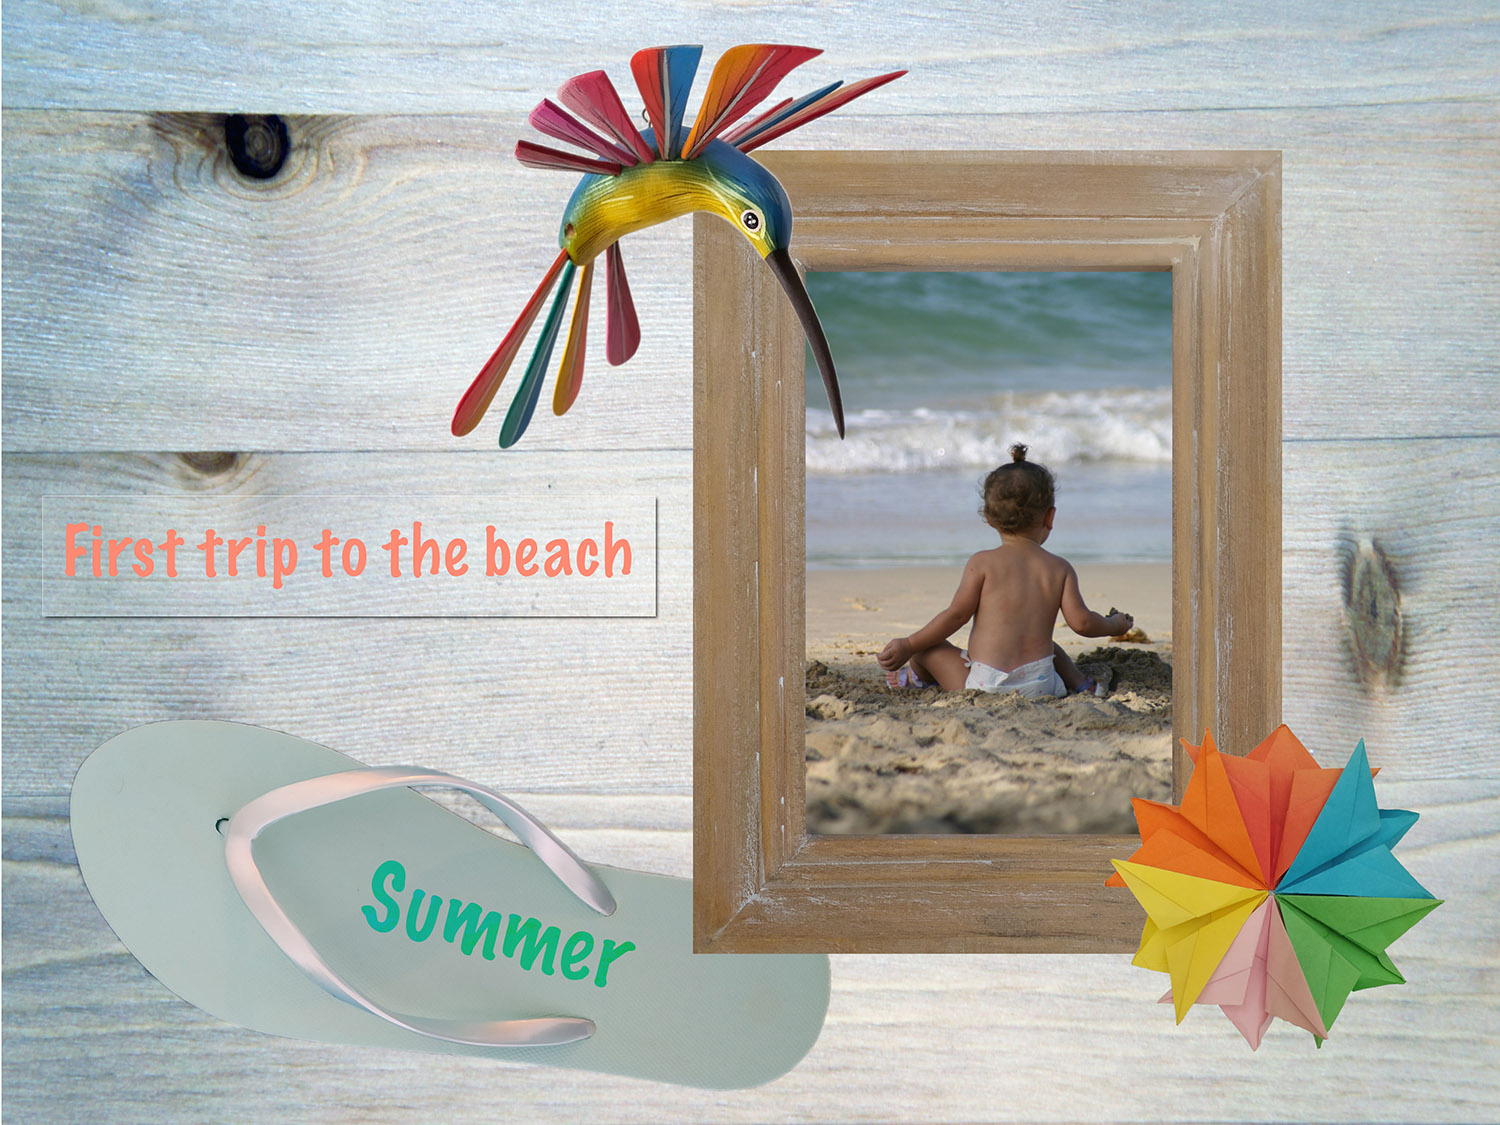 Digital Scrapbooking using GIMP